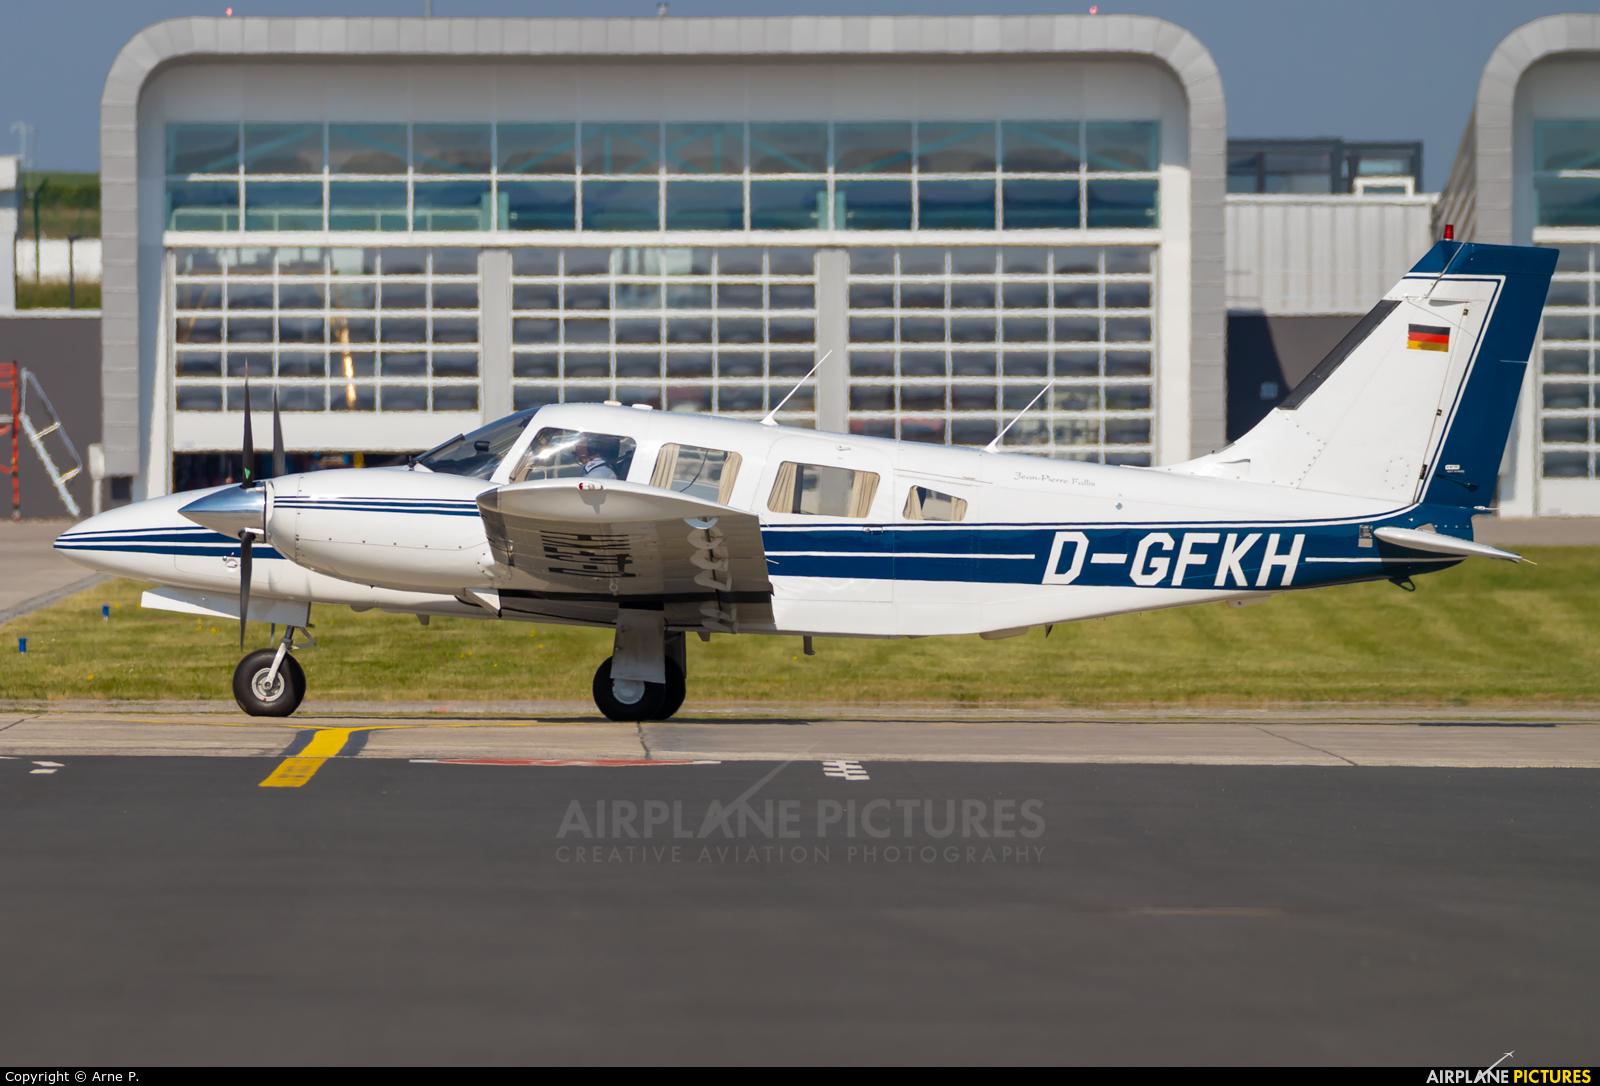 Private D-GFKH aircraft at Kassel-Calden